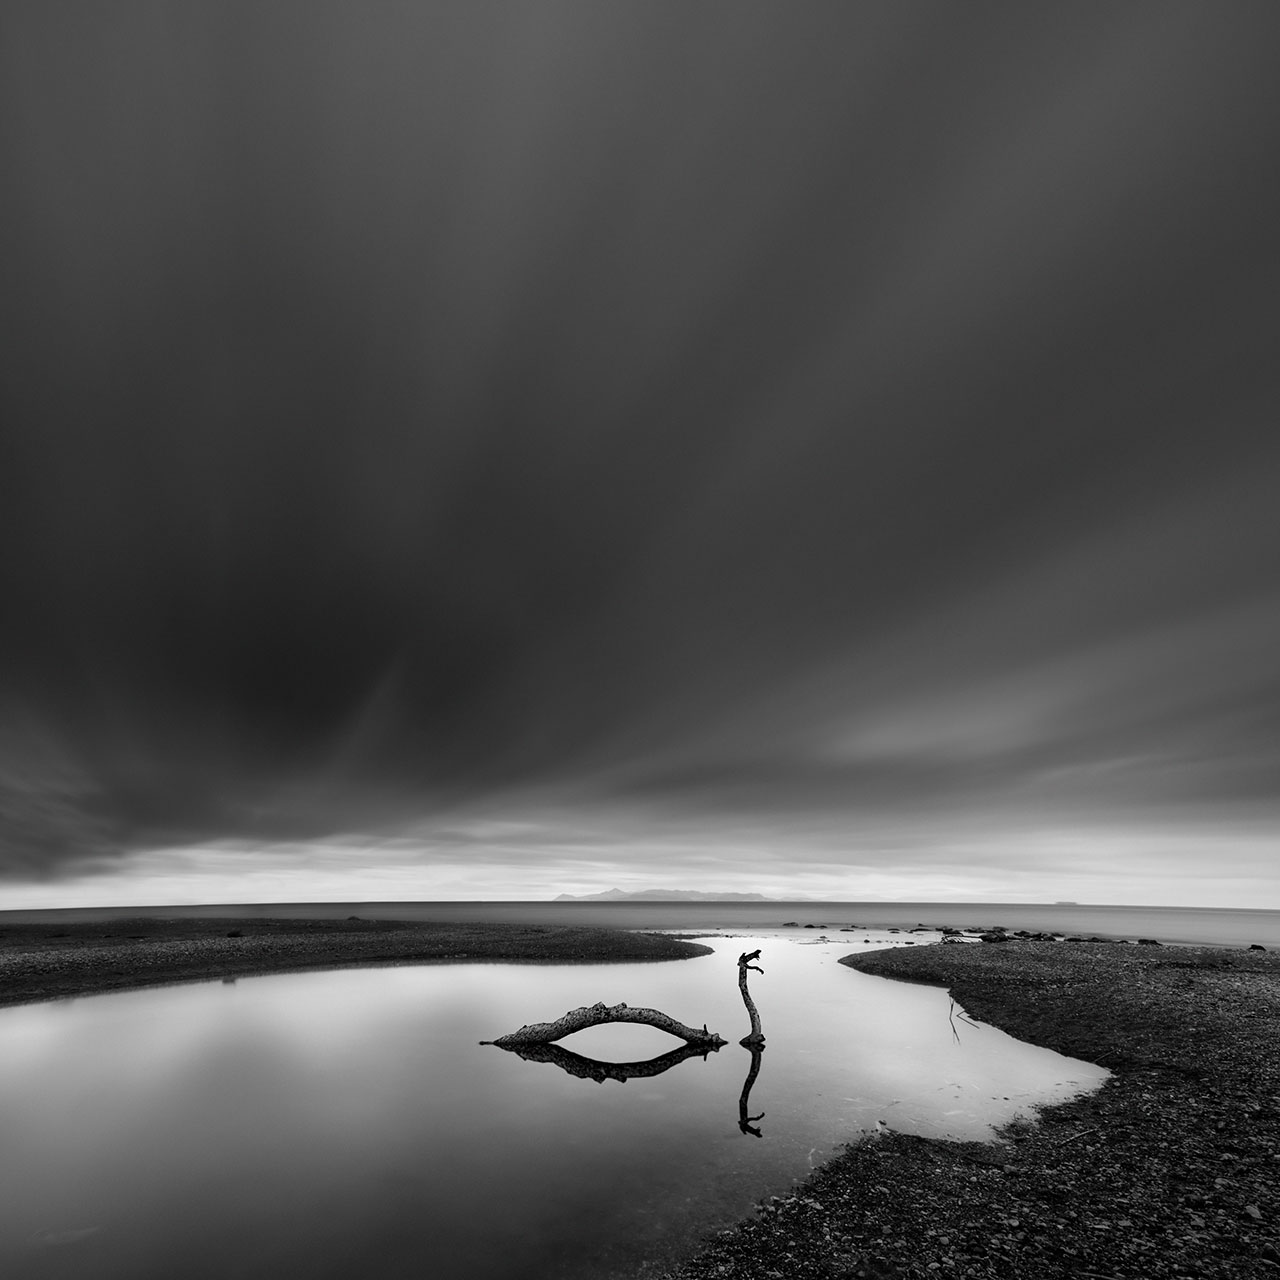 George Digalakis, The monster. © George Digalakis.